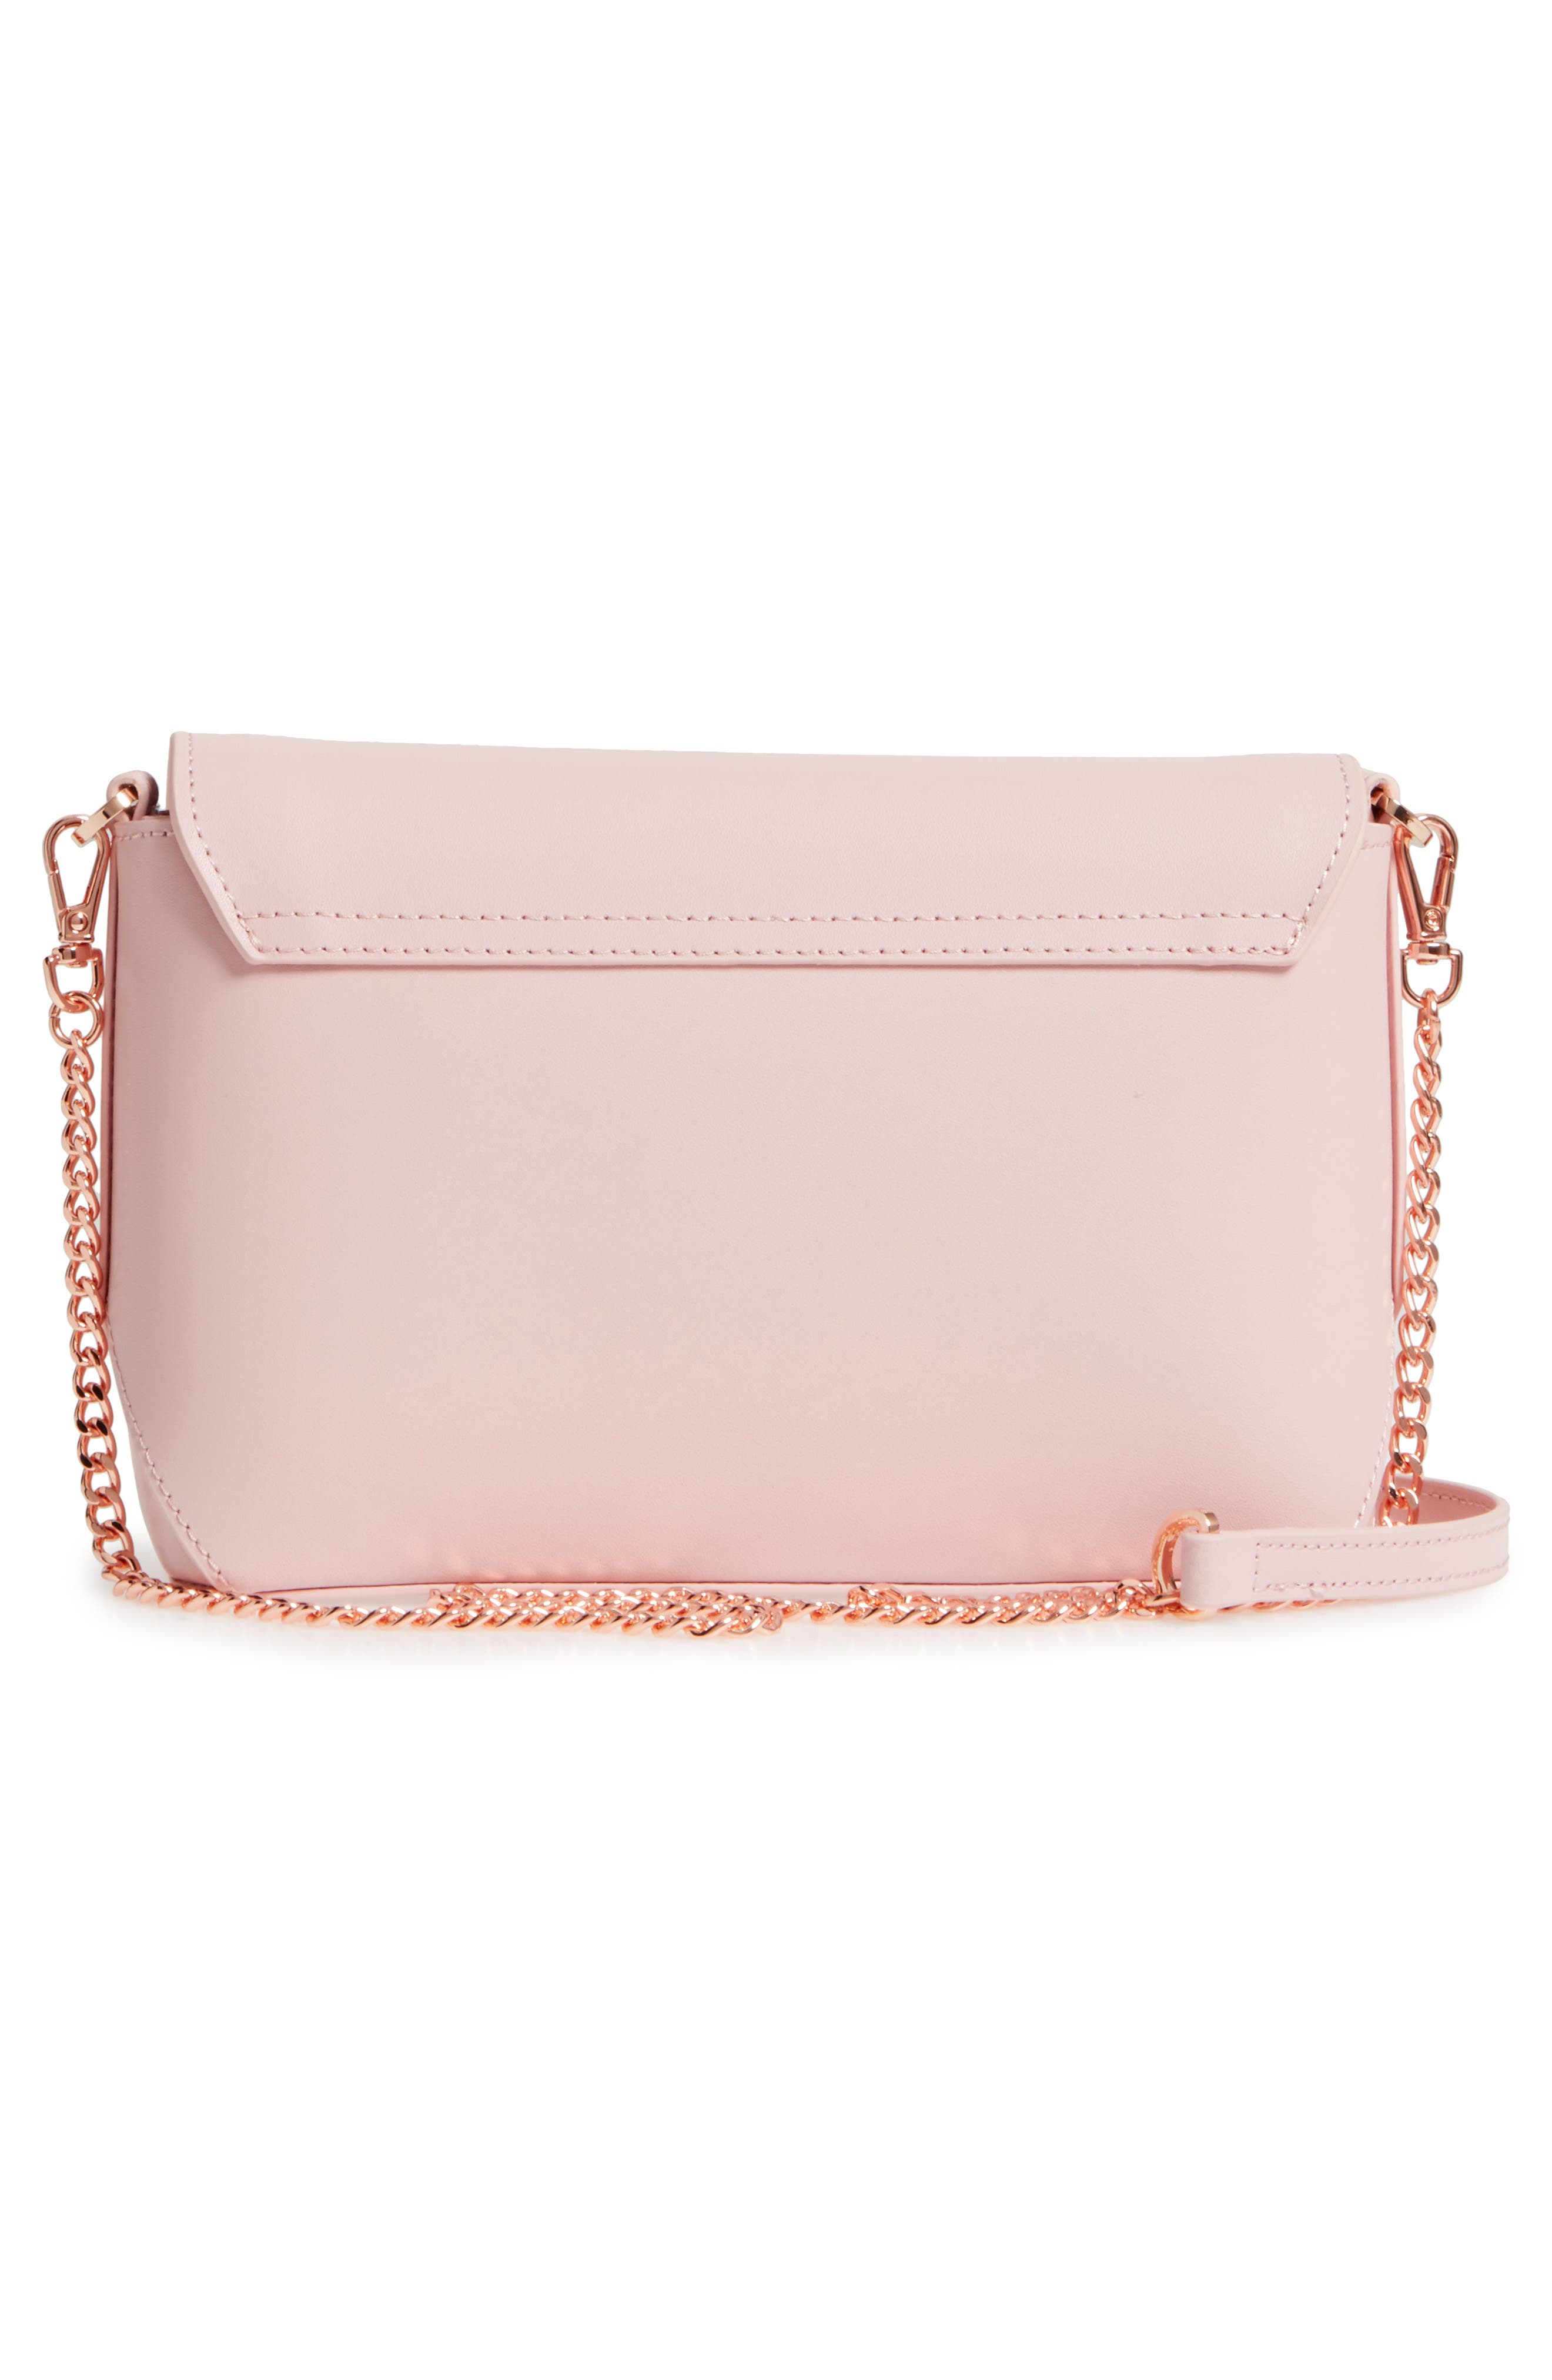 Bow Embossed Leather Crossbody Bag,                             Alternate thumbnail 3, color,                             Light Pink